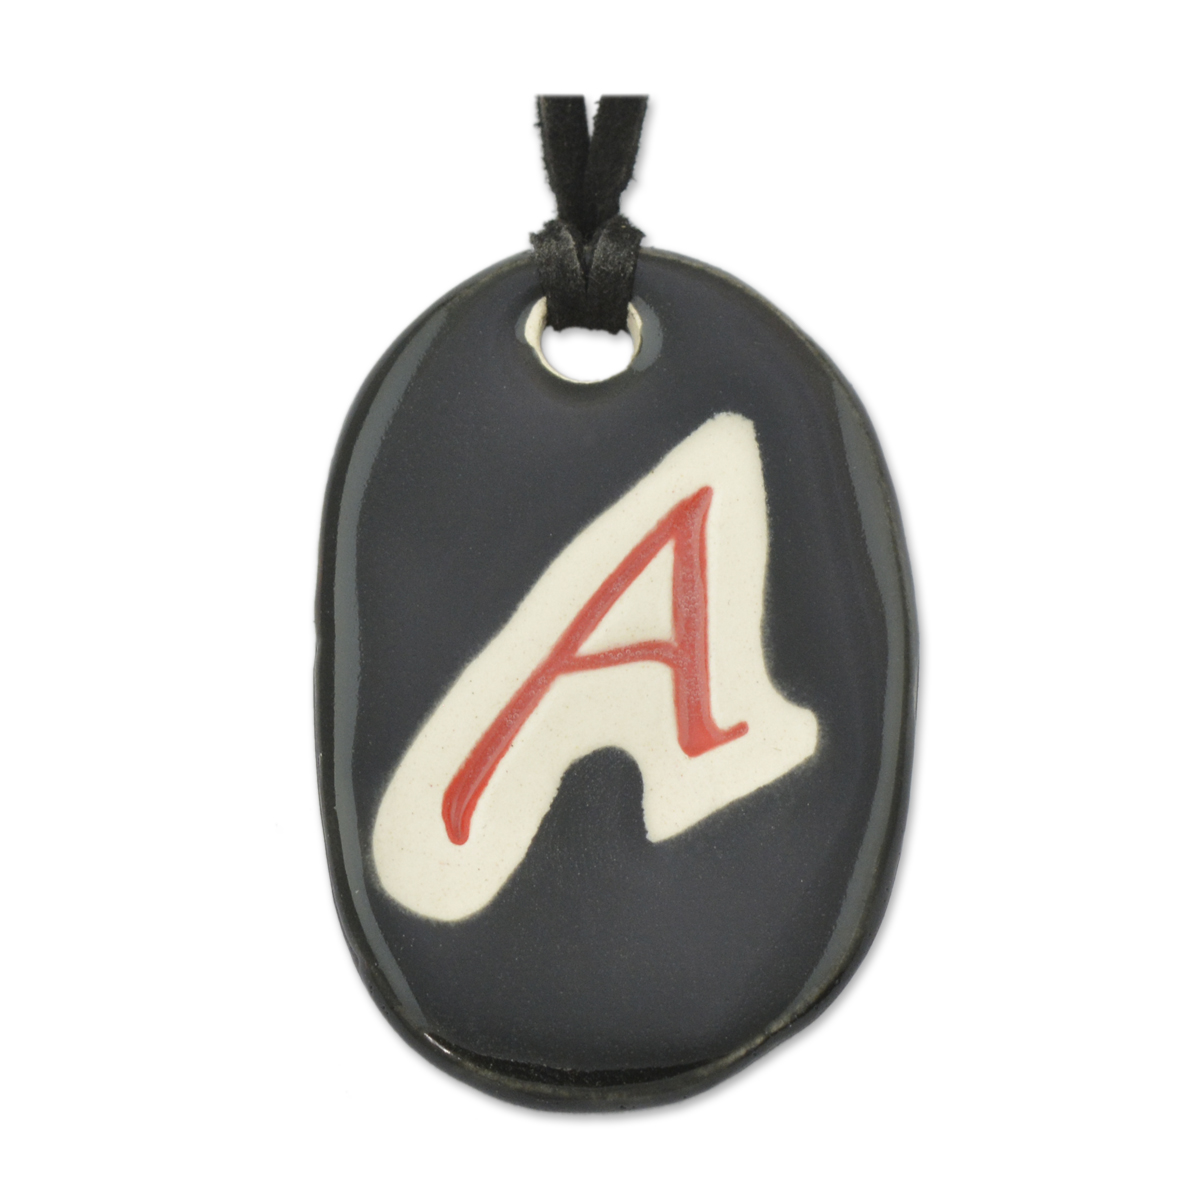 Dawkins a for atheist ceramic necklace 2 tall quick view aloadofball Choice Image